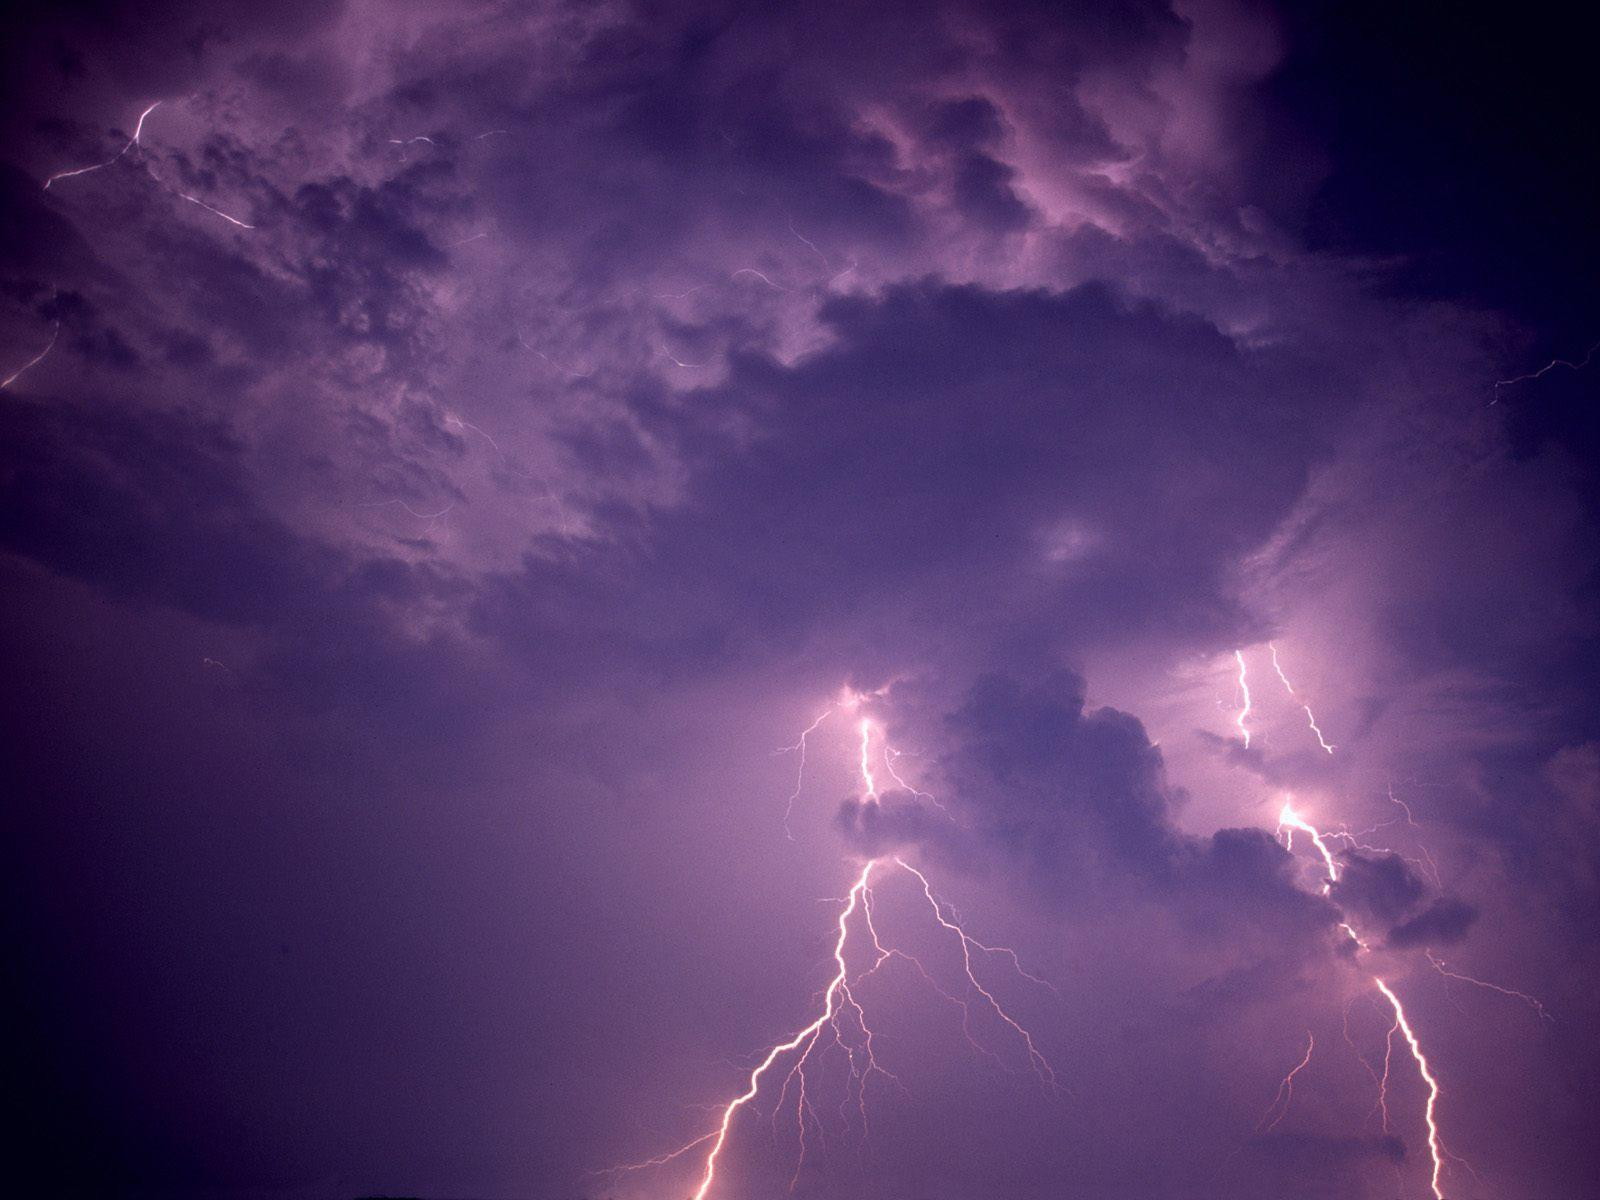 Lightning storm bolt free desktop background - free wallpaper image